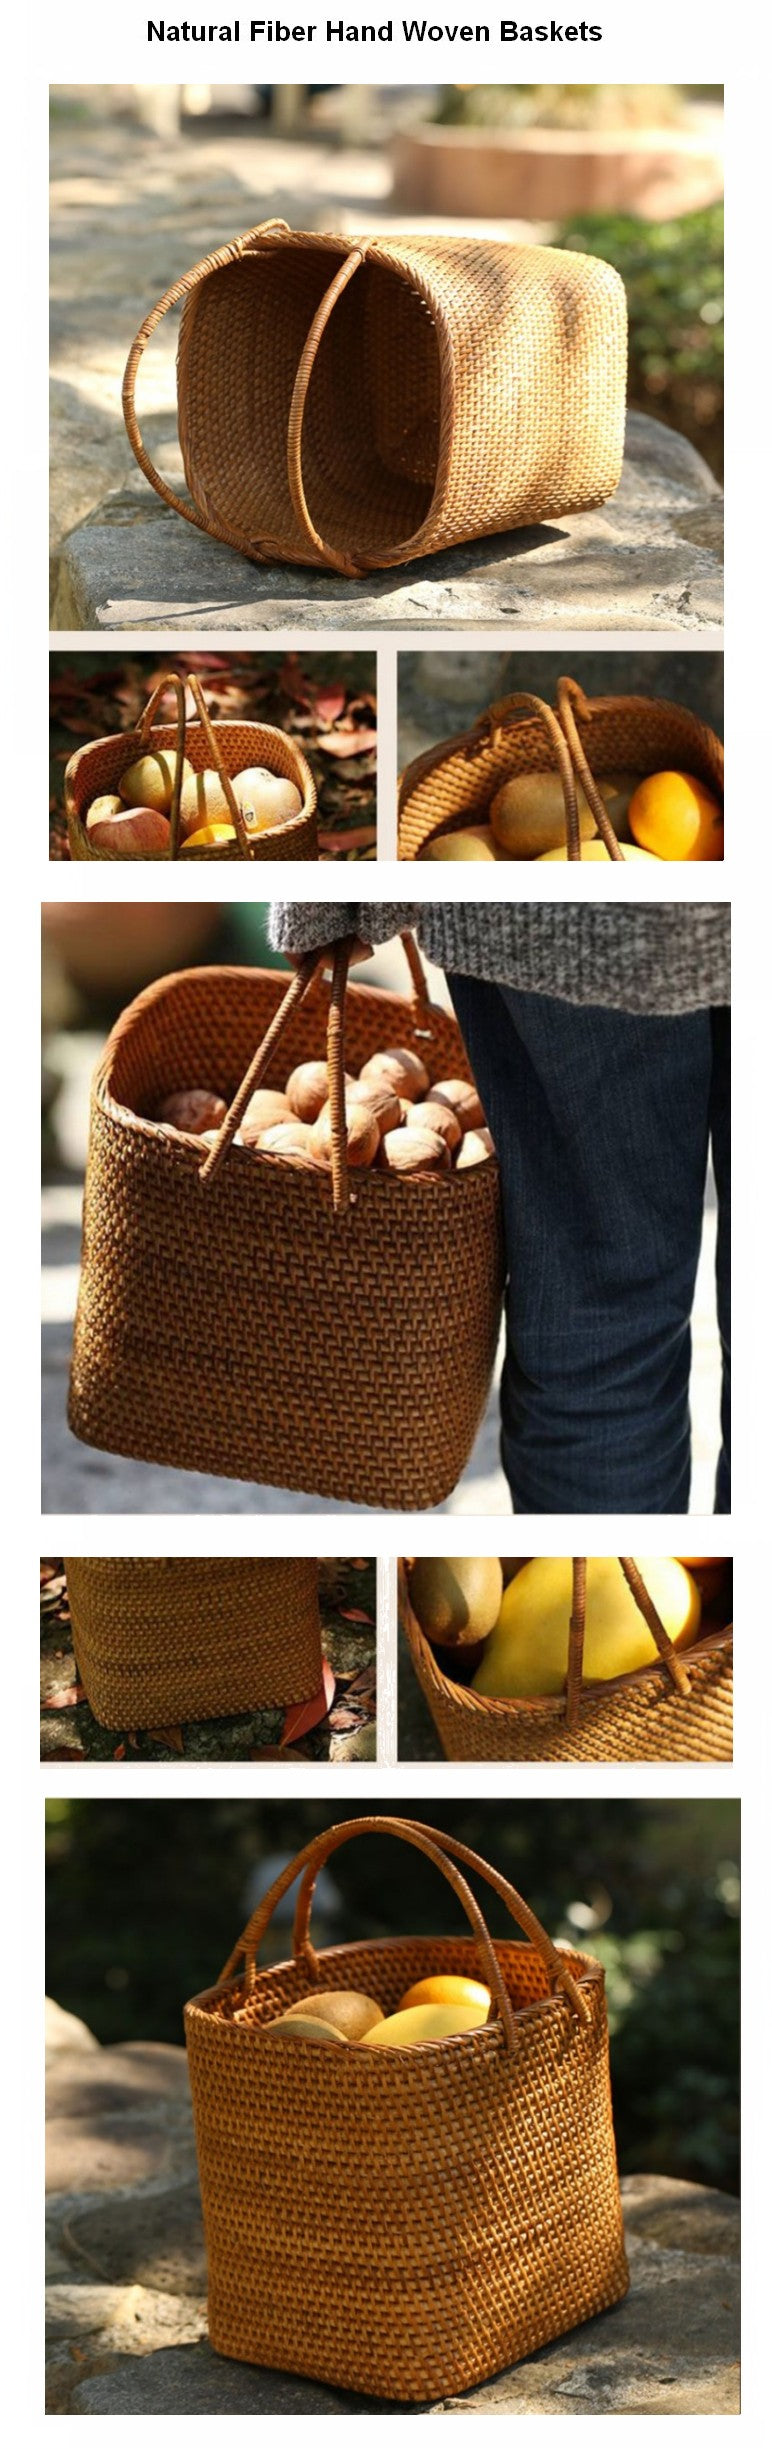 Indonesia Hand Woven Storage Basket